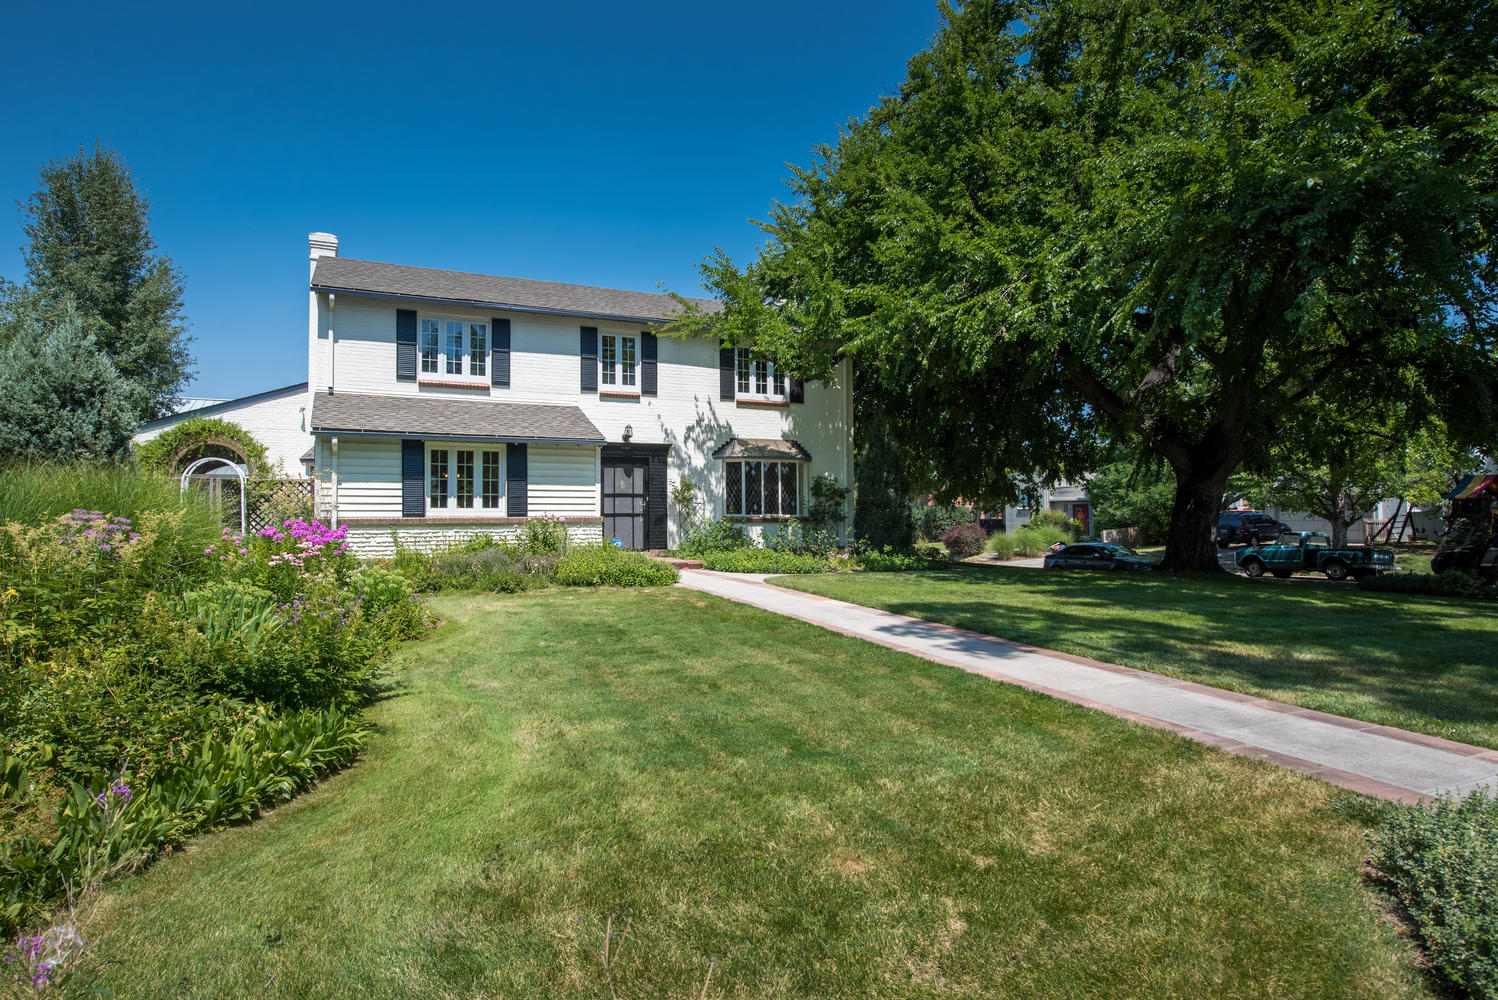 Single Family Home for Sale at Classic New England Style Colonial 5745 East 6th Avenue Parkway Hilltop, Denver, Colorado, 80220 United States